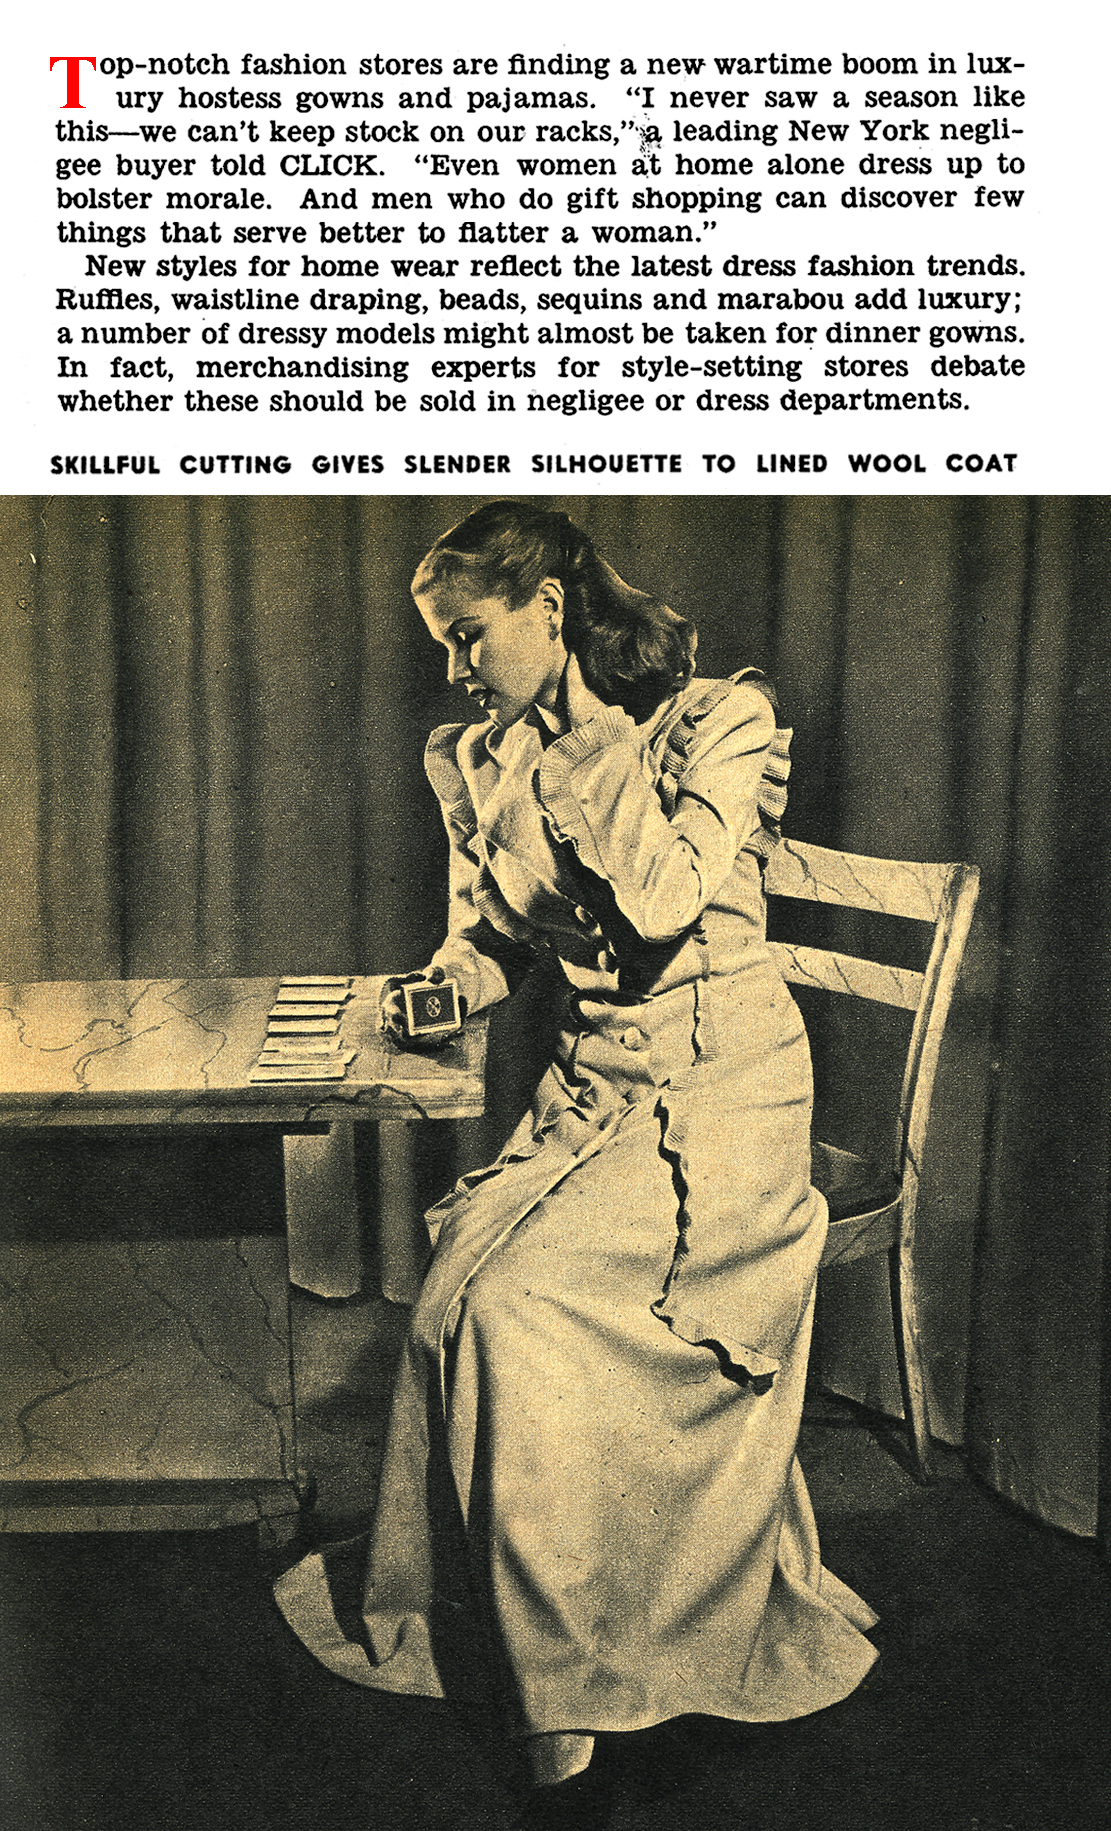 The Hostess Gown Made a Splash on the Home Front (Click Magazine, 1944)